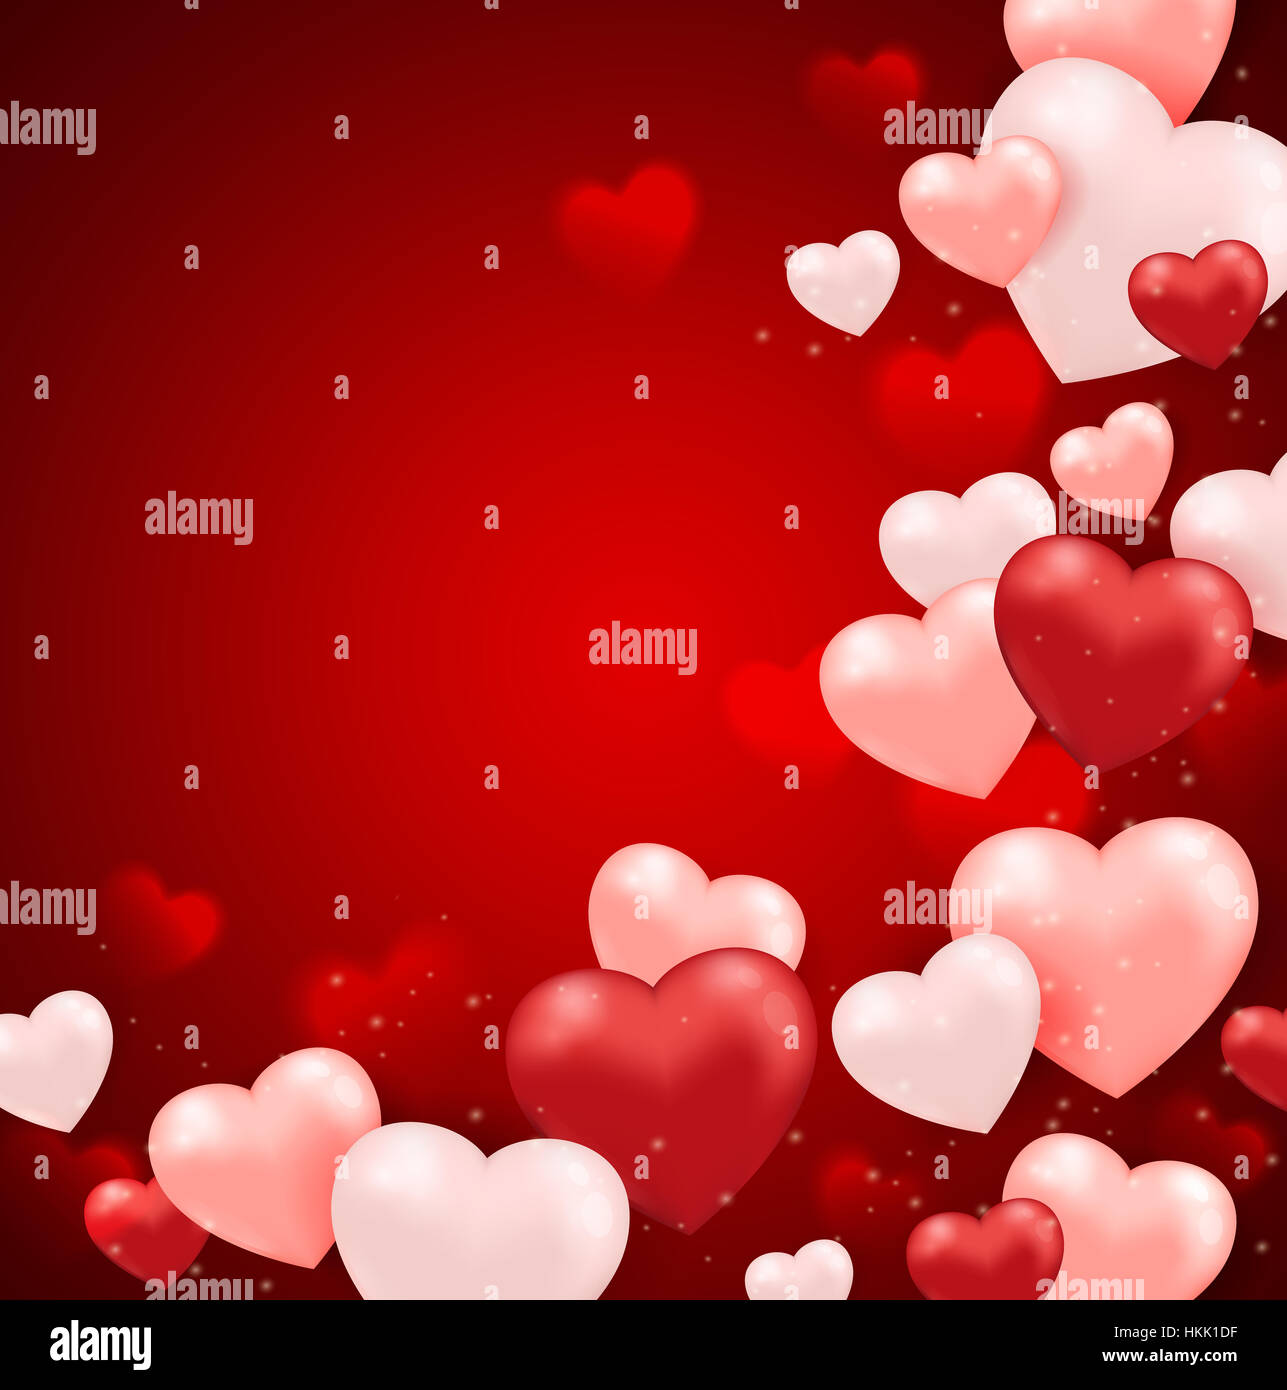 Red And Pink Heart Balloons On A Red Background For